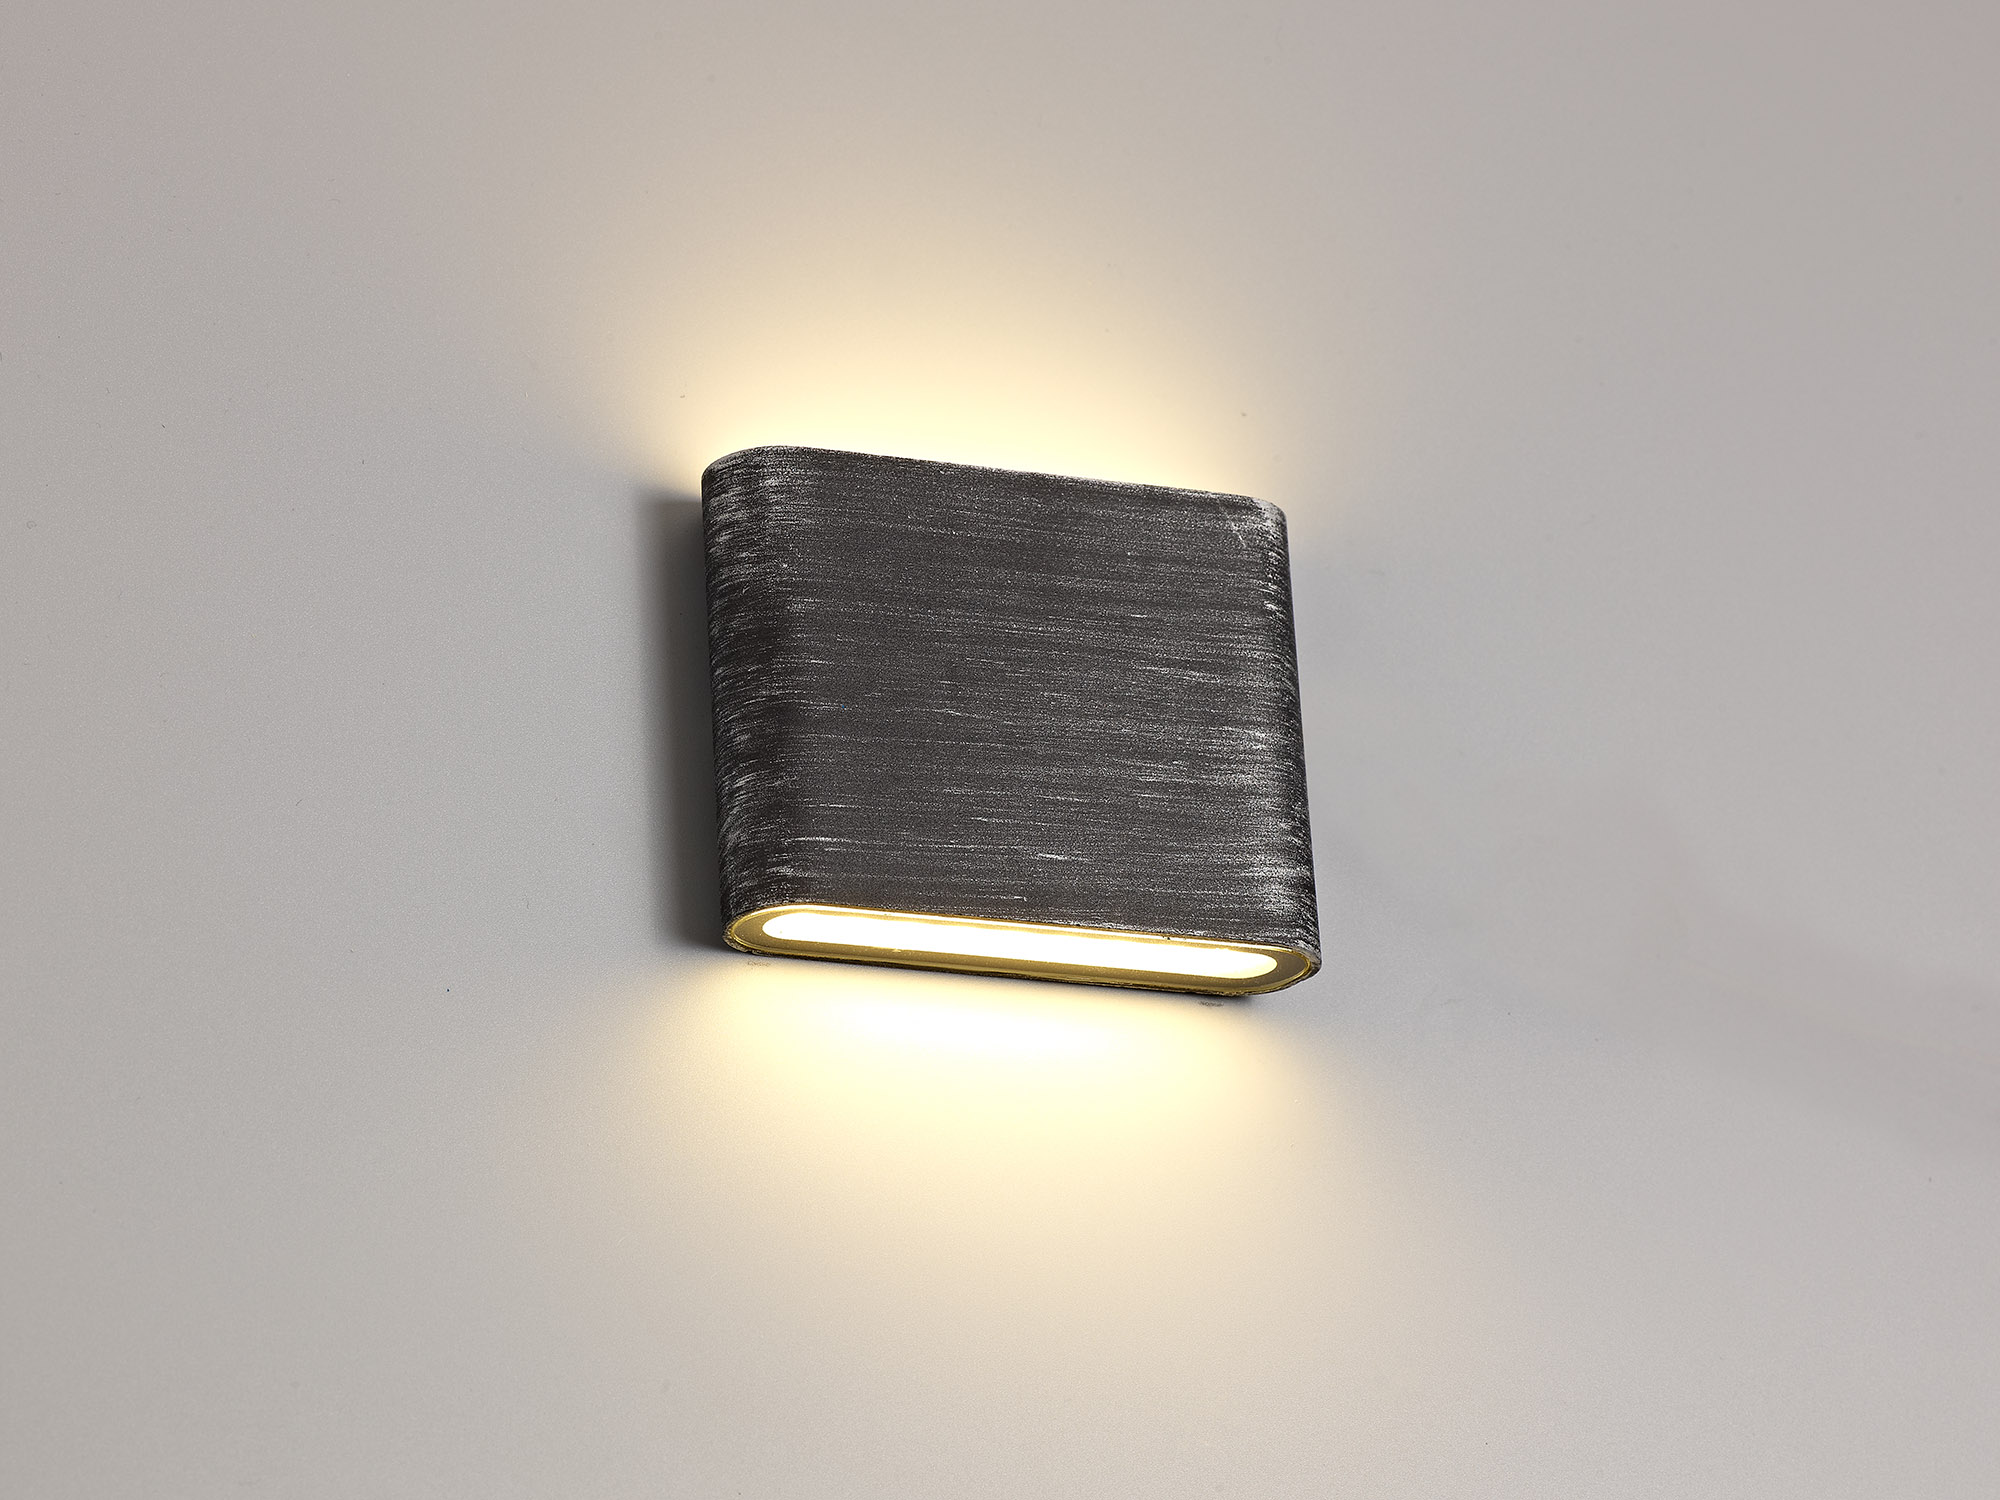 Up and Downward Lighting Wall Lamp, 2 x 3W LED, 3000K, 350lm, IP54, Black/Silver, 3yrs Warranty